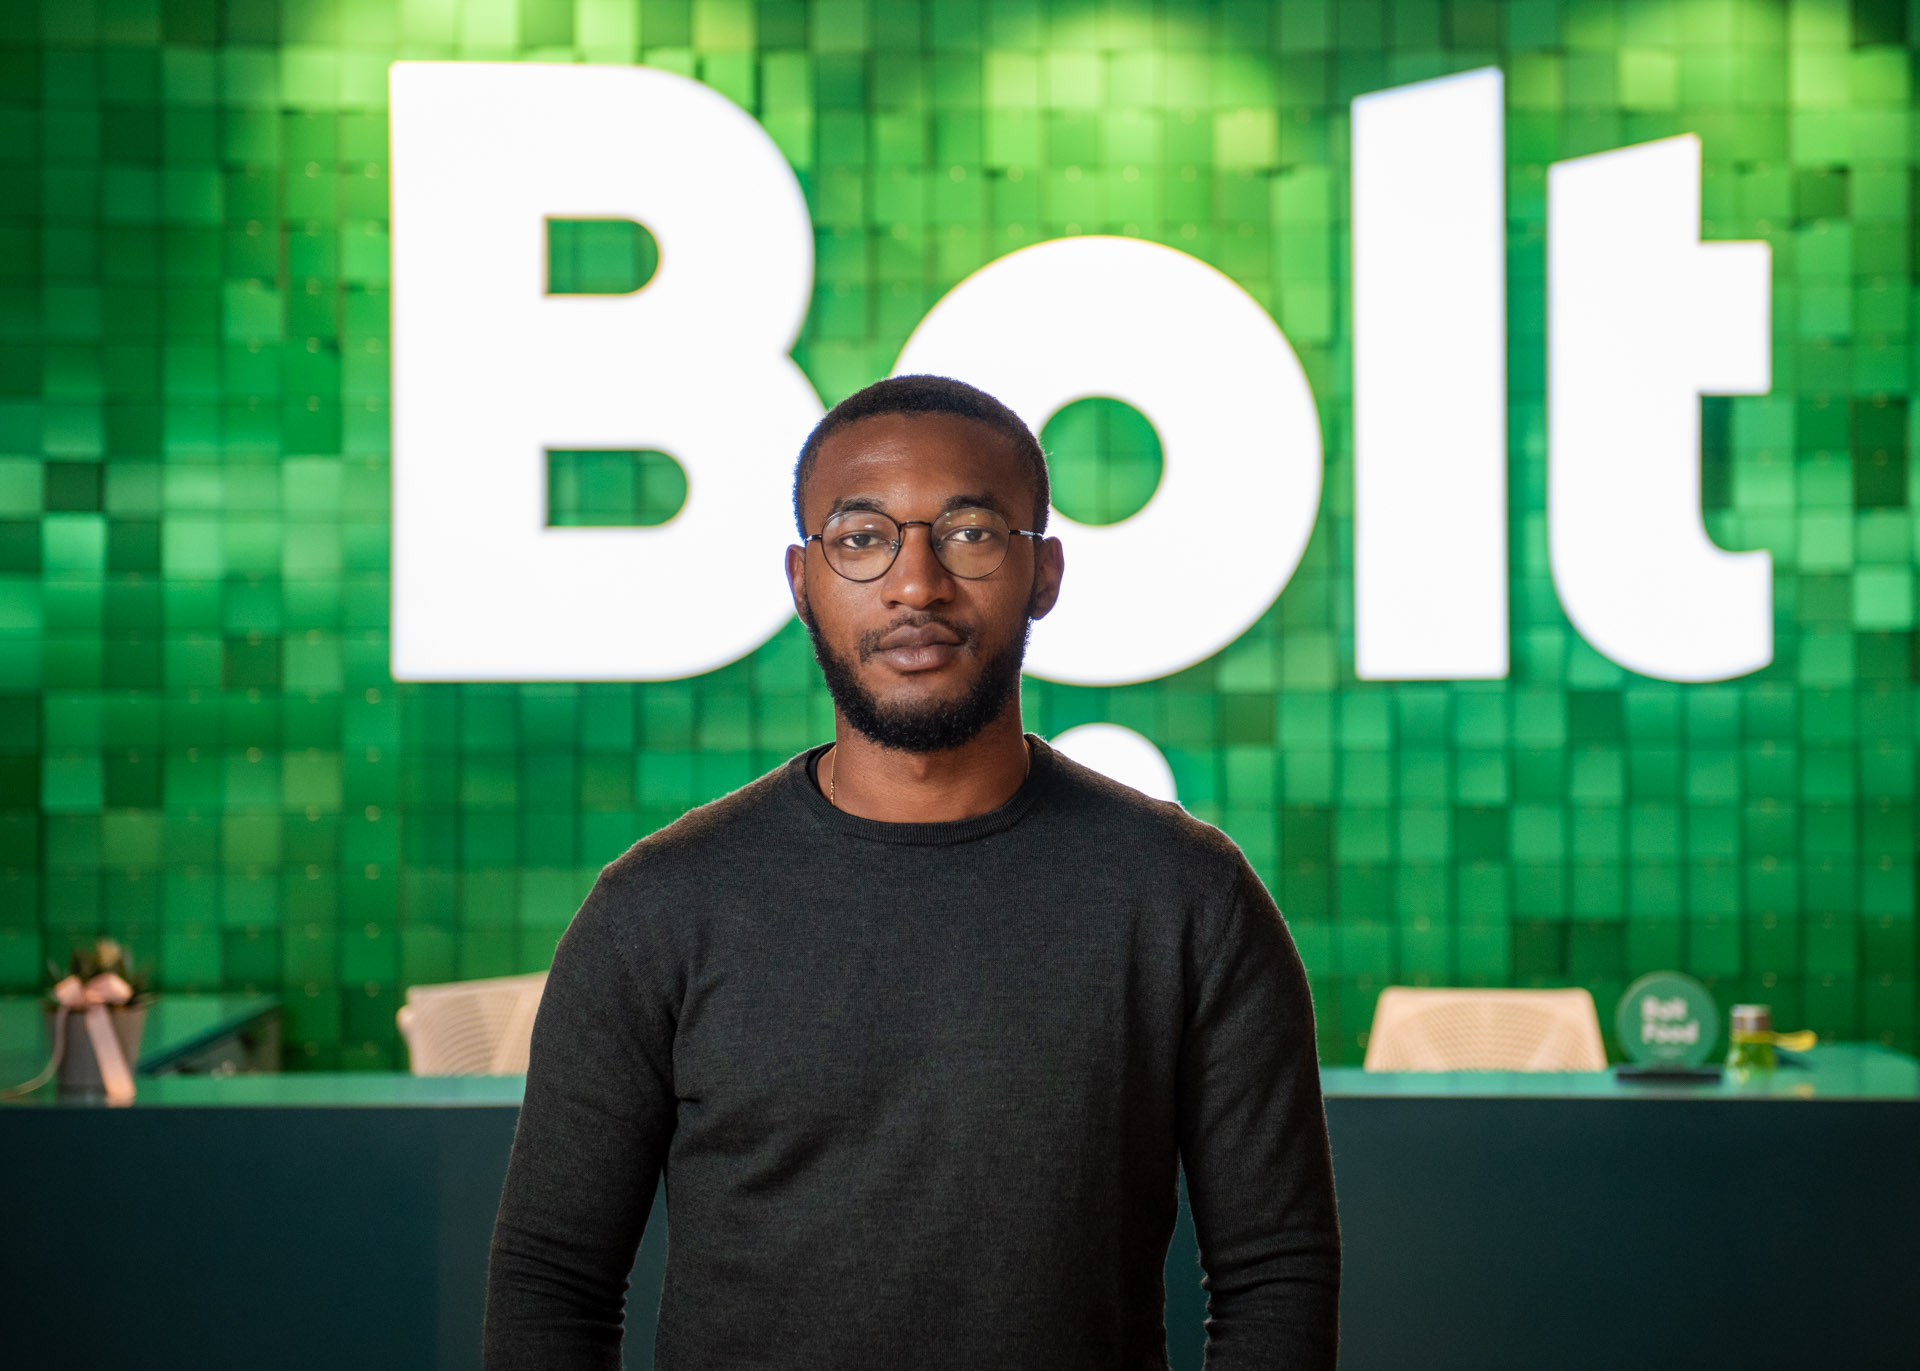 Bolt appoints Nonso Onwuzulike as new Country Manager for Ghana